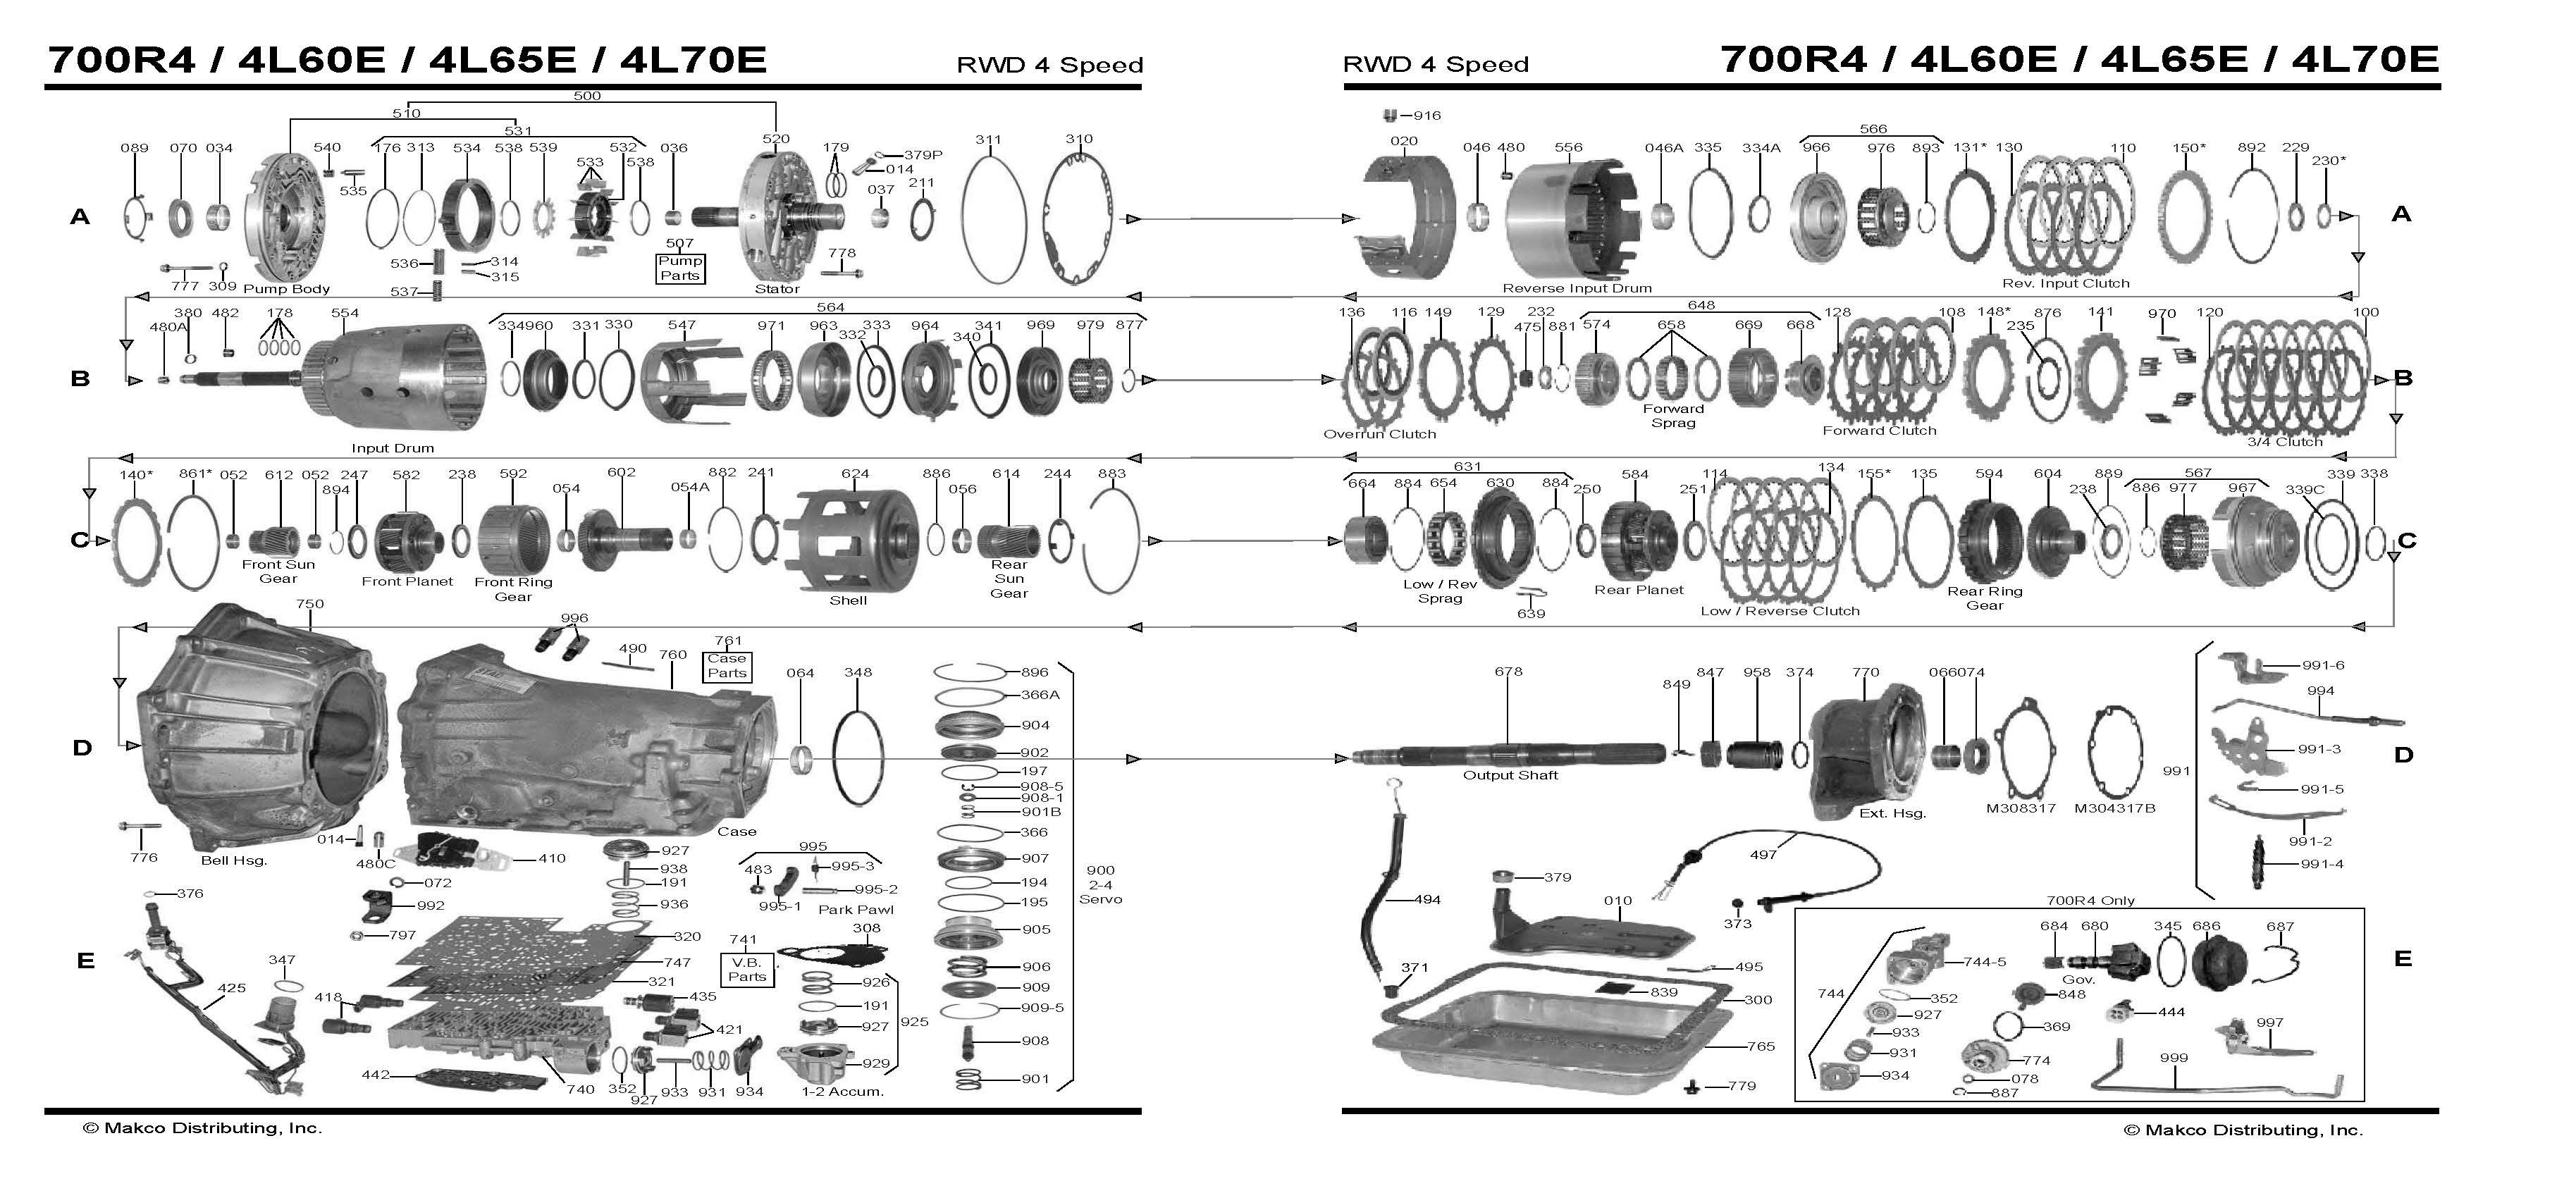 Jeep User Manuals Transmission Identification User Manuals